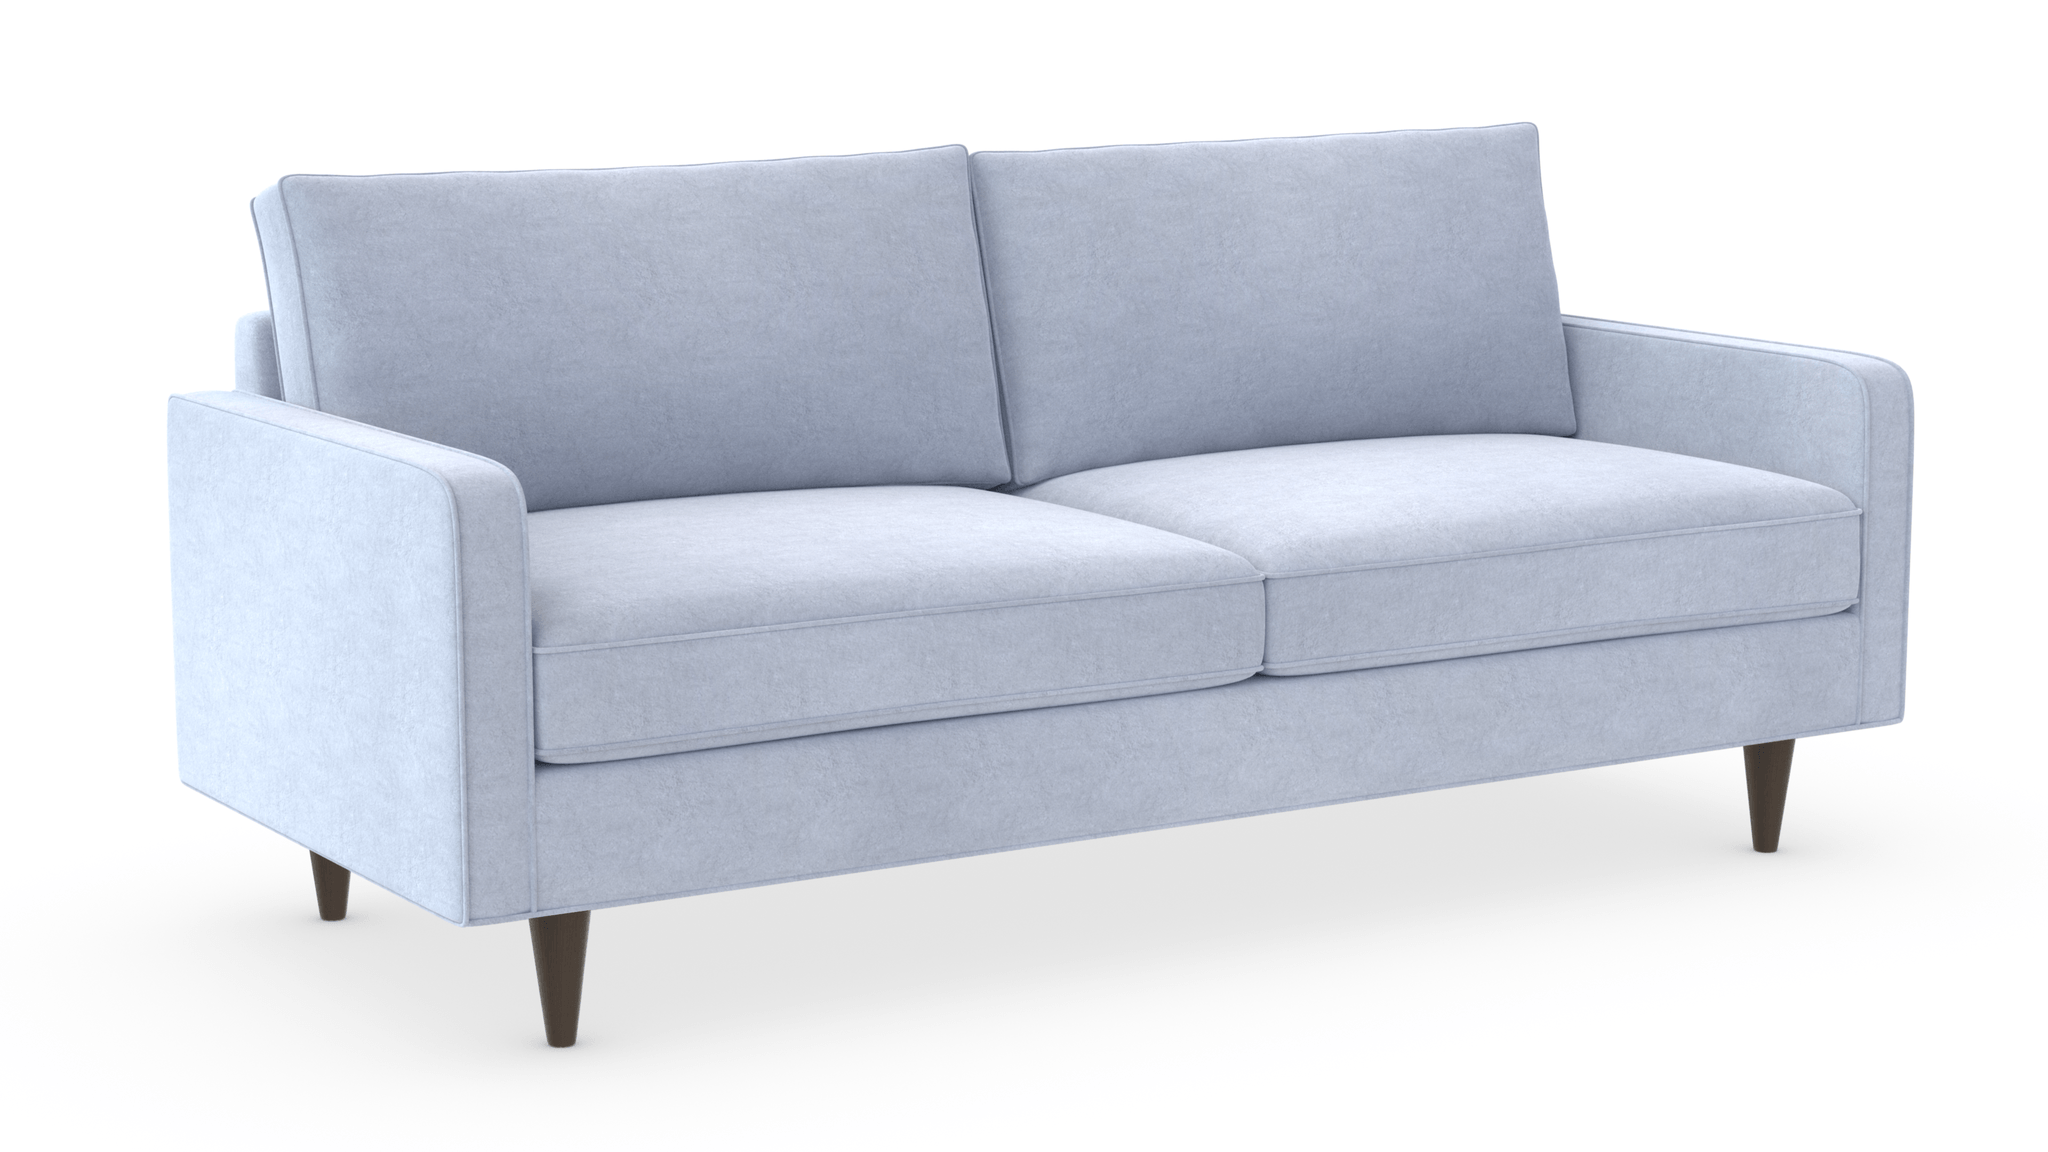 Lenny Apartment Sofa Wood Legs 71""